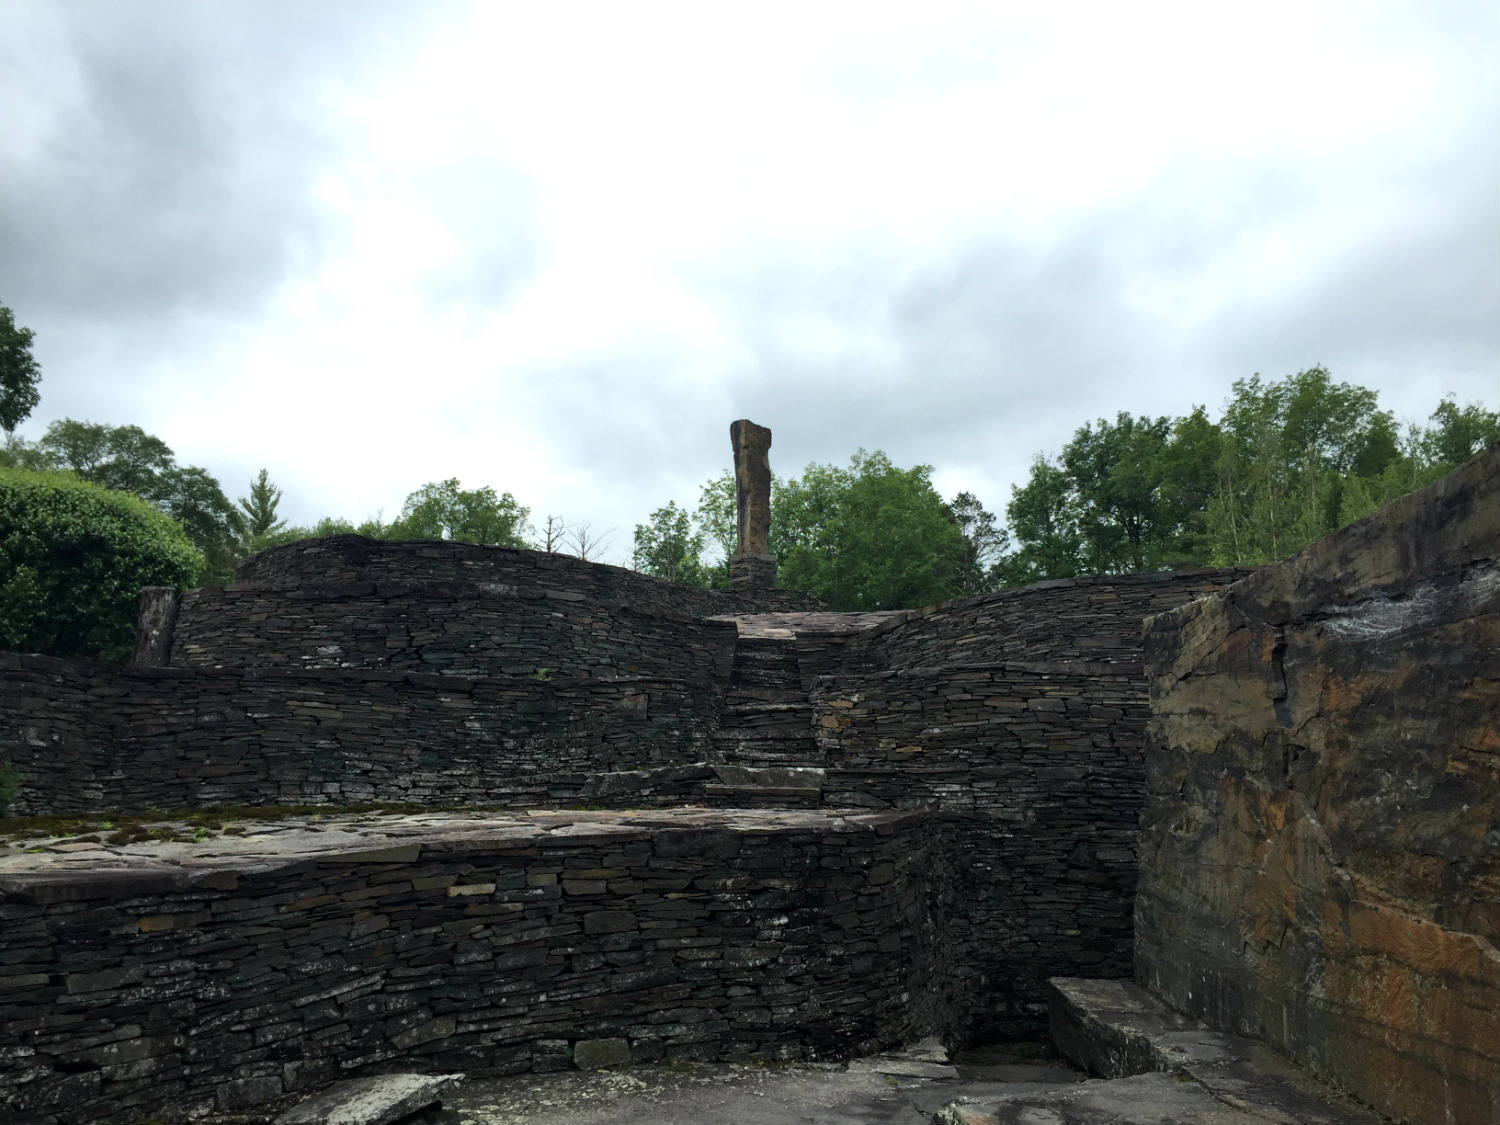 Stone Walls and Stairs at Opus 40 in Saugerties, New York